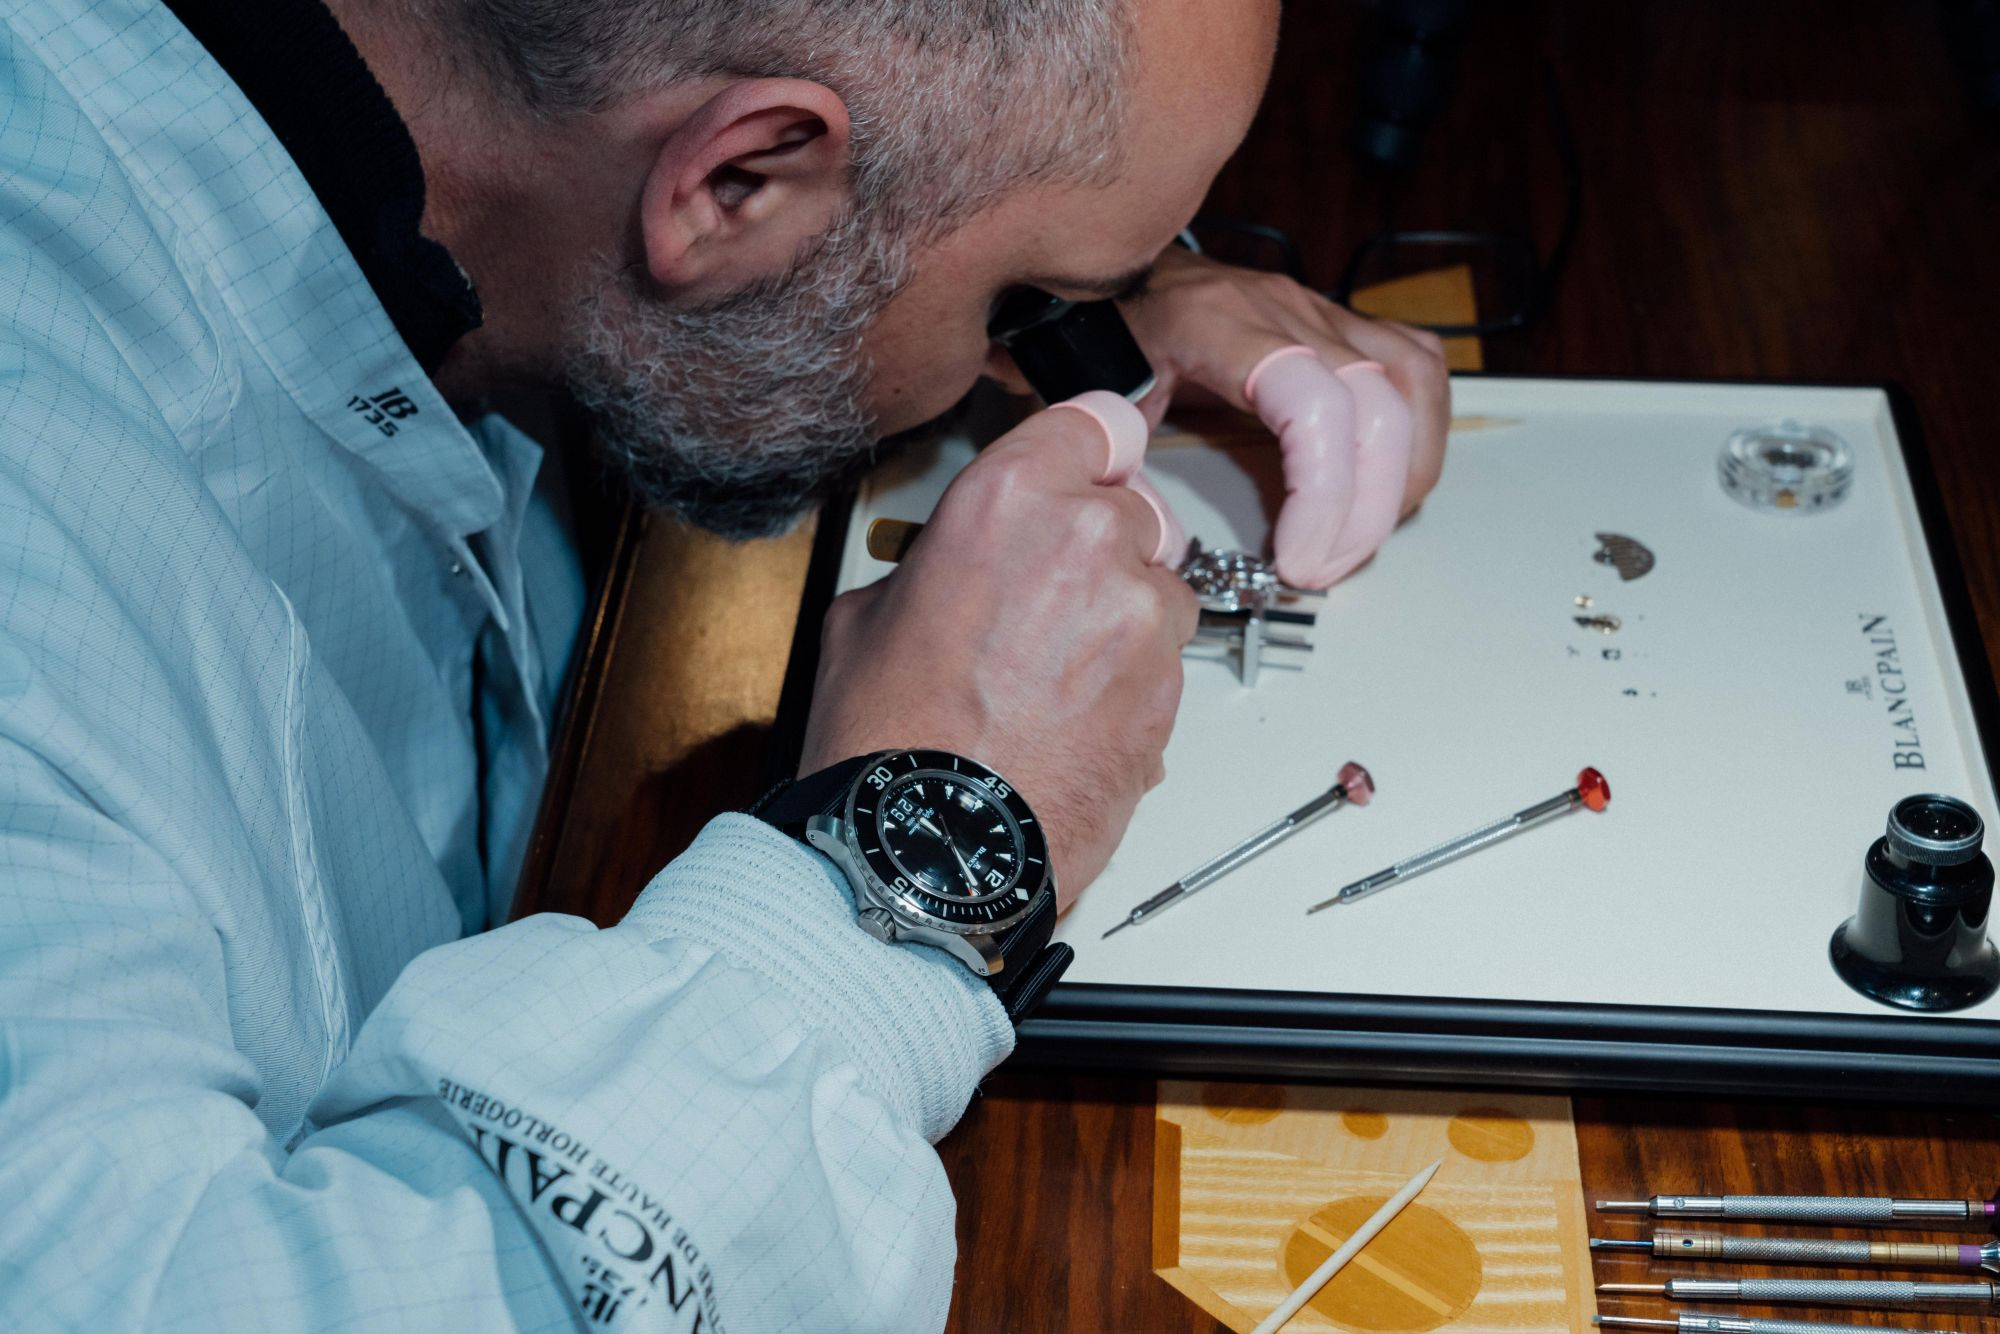 Blancpain Celebrates Craftsmanship And Joie de Vivre